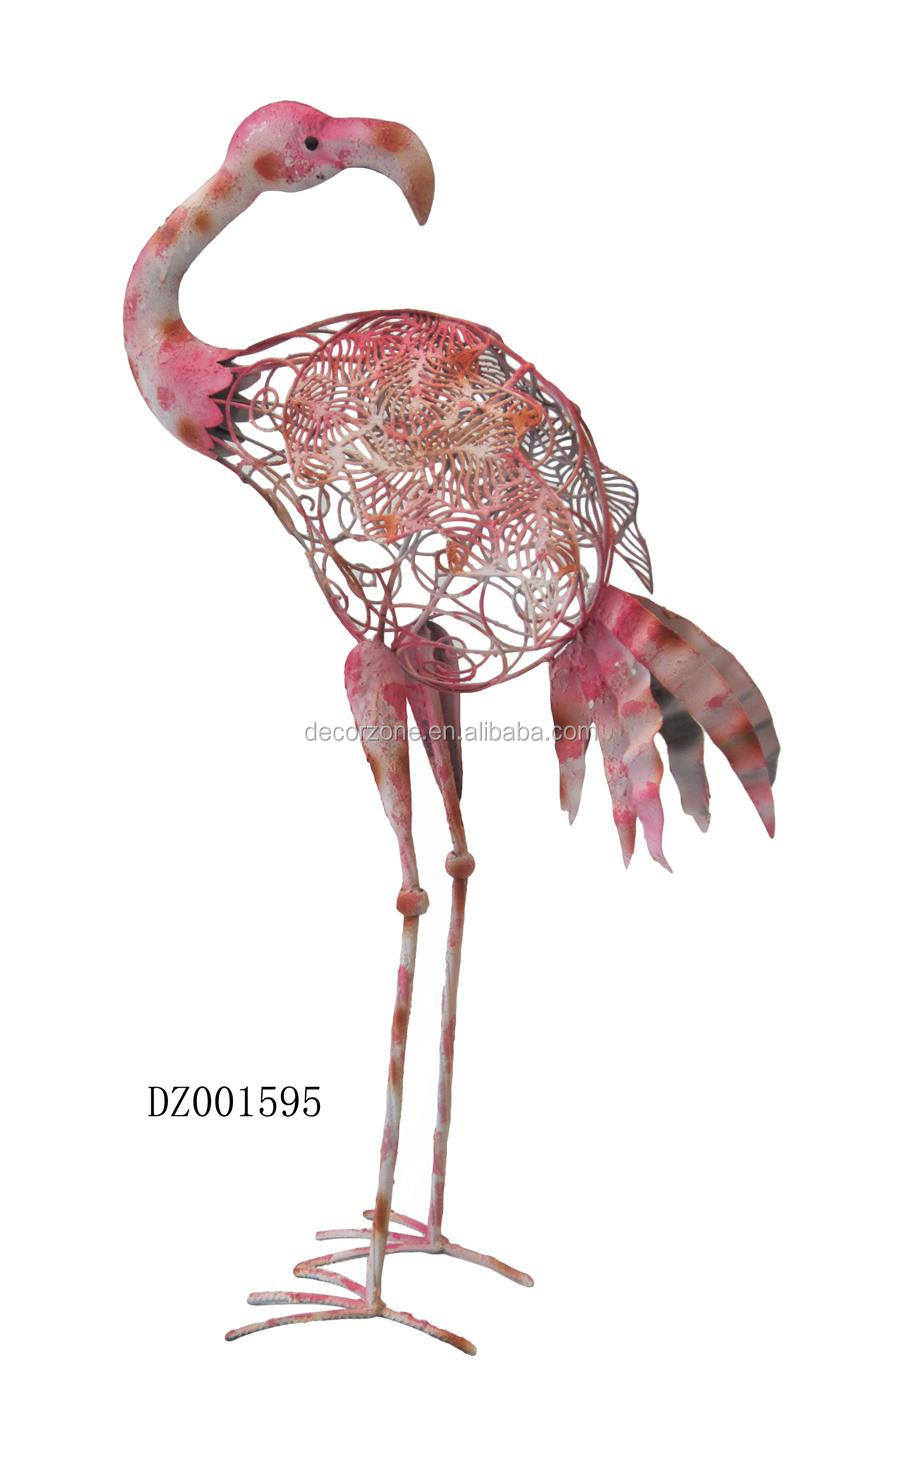 Flamingo garden ornament - Pink Flamingo Wrought Iron Metal Garden Ornaments